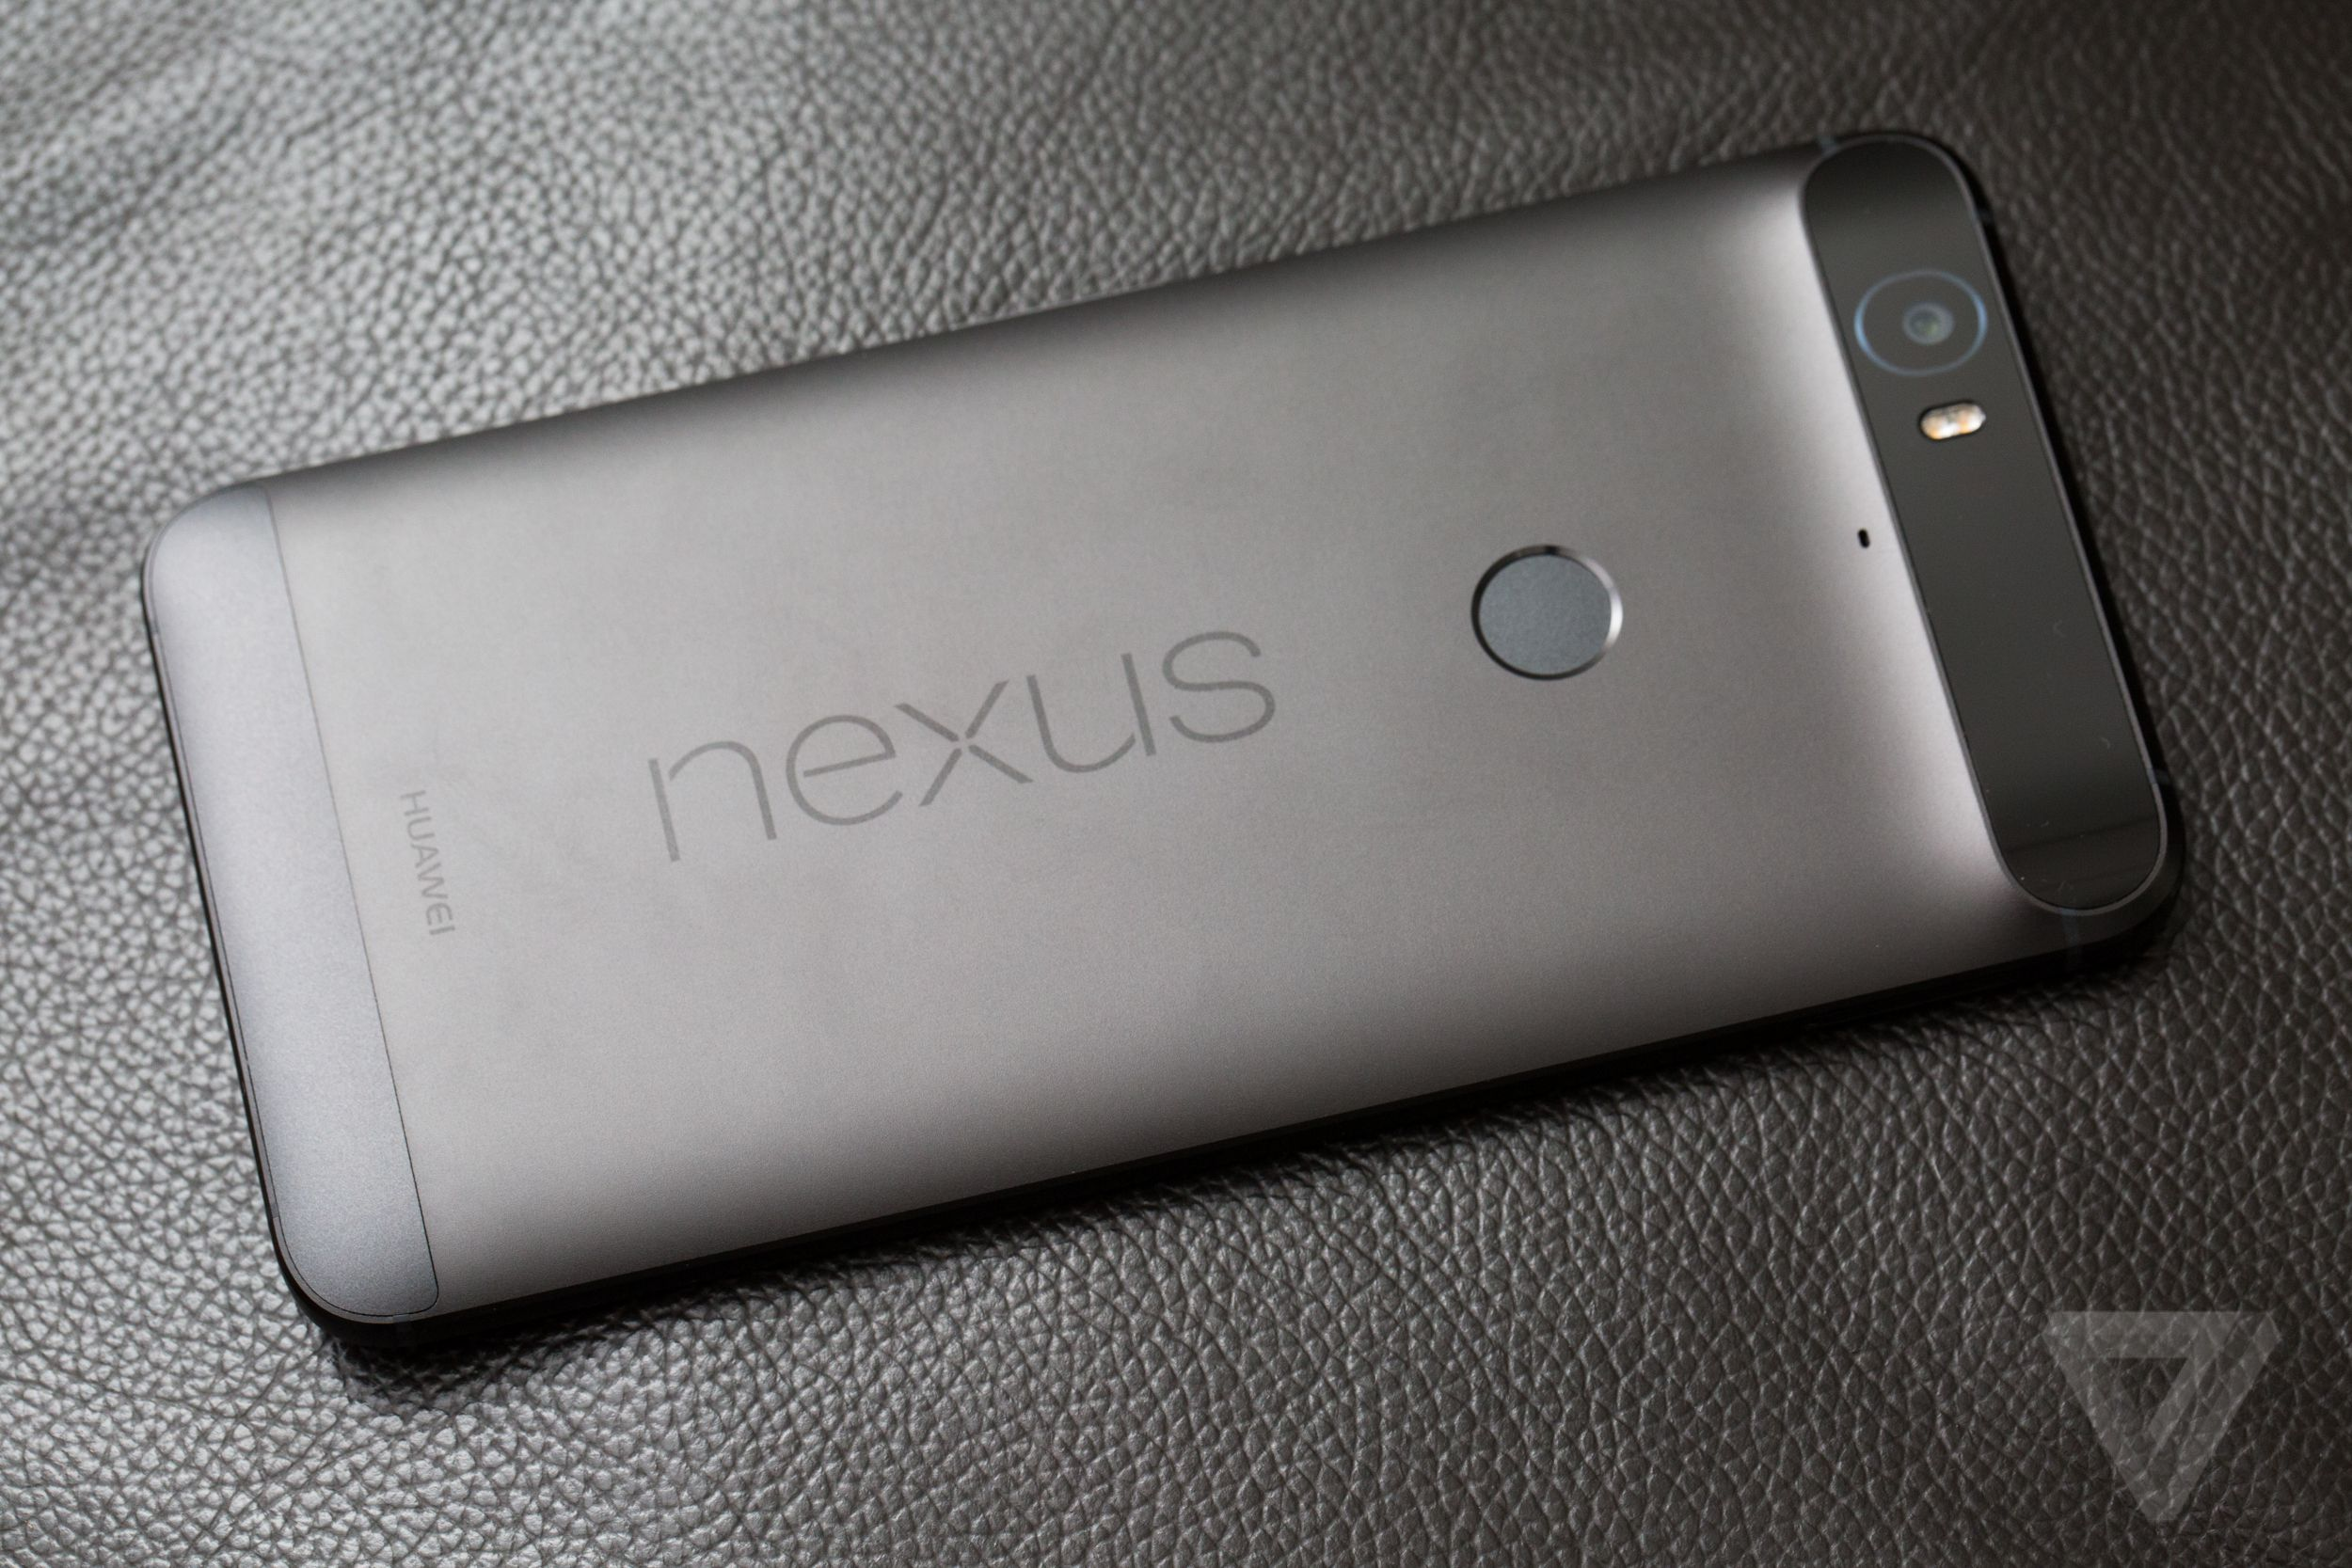 Phone Best Reviewed Android Phone nexus 6p review the best android phone verge 6p